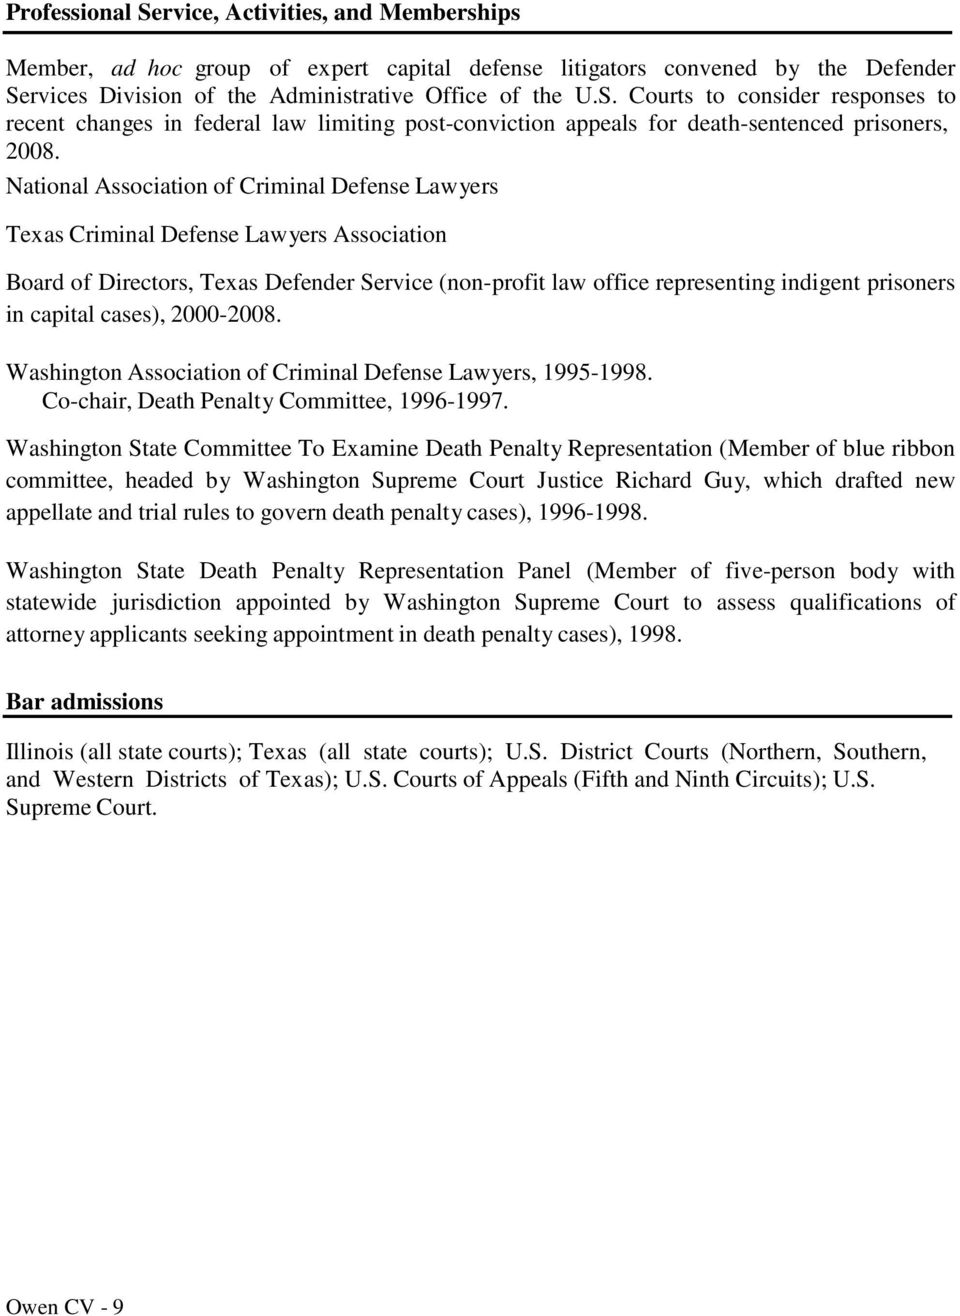 capital cases), 2000-2008. Washington Association of Criminal Defense Lawyers, 1995-1998. Co-chair, Death Penalty Committee, 1996-1997.